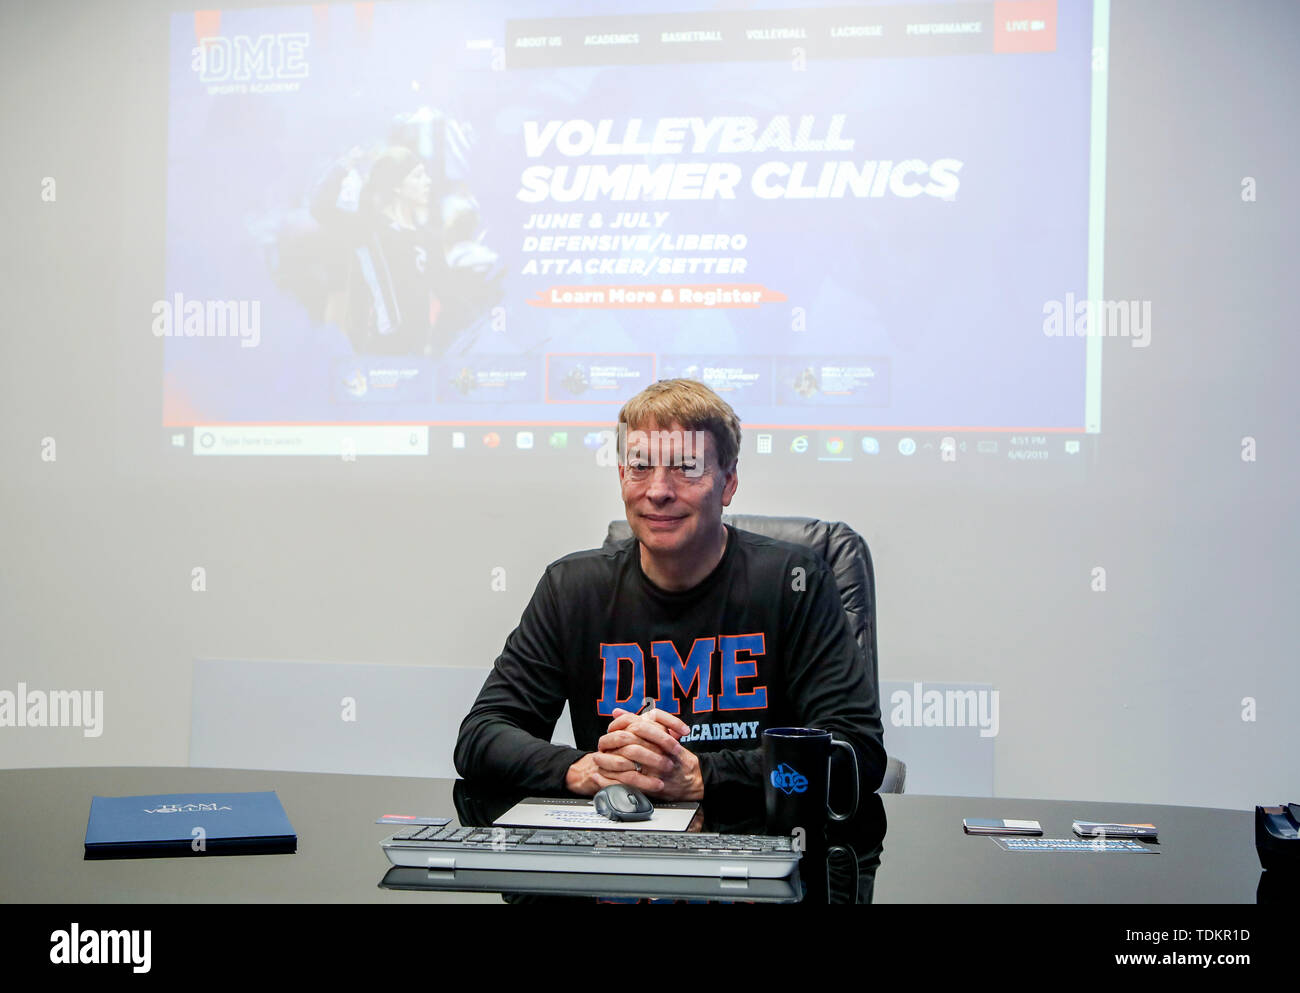 (190617) -- DAYTONA BEACH (U.S.), June 17, 2019 (Xinhua) -- Mike Panaggio, co-founder and owner of DME Sports Academy (DMESA), talks about his company in his office in Daytona Beach of Florida, the United States, June 6, 2019. Sports skill training and culture exchange opportunities offered by DME Sports Academy for talented students and young individuals from around the world have advanced people-to-people connection between China and the United States. Established three years ago, DMESA offers top-level athletic development training and life skills mentoring to both U.S. domestic and oversea - Stock Image